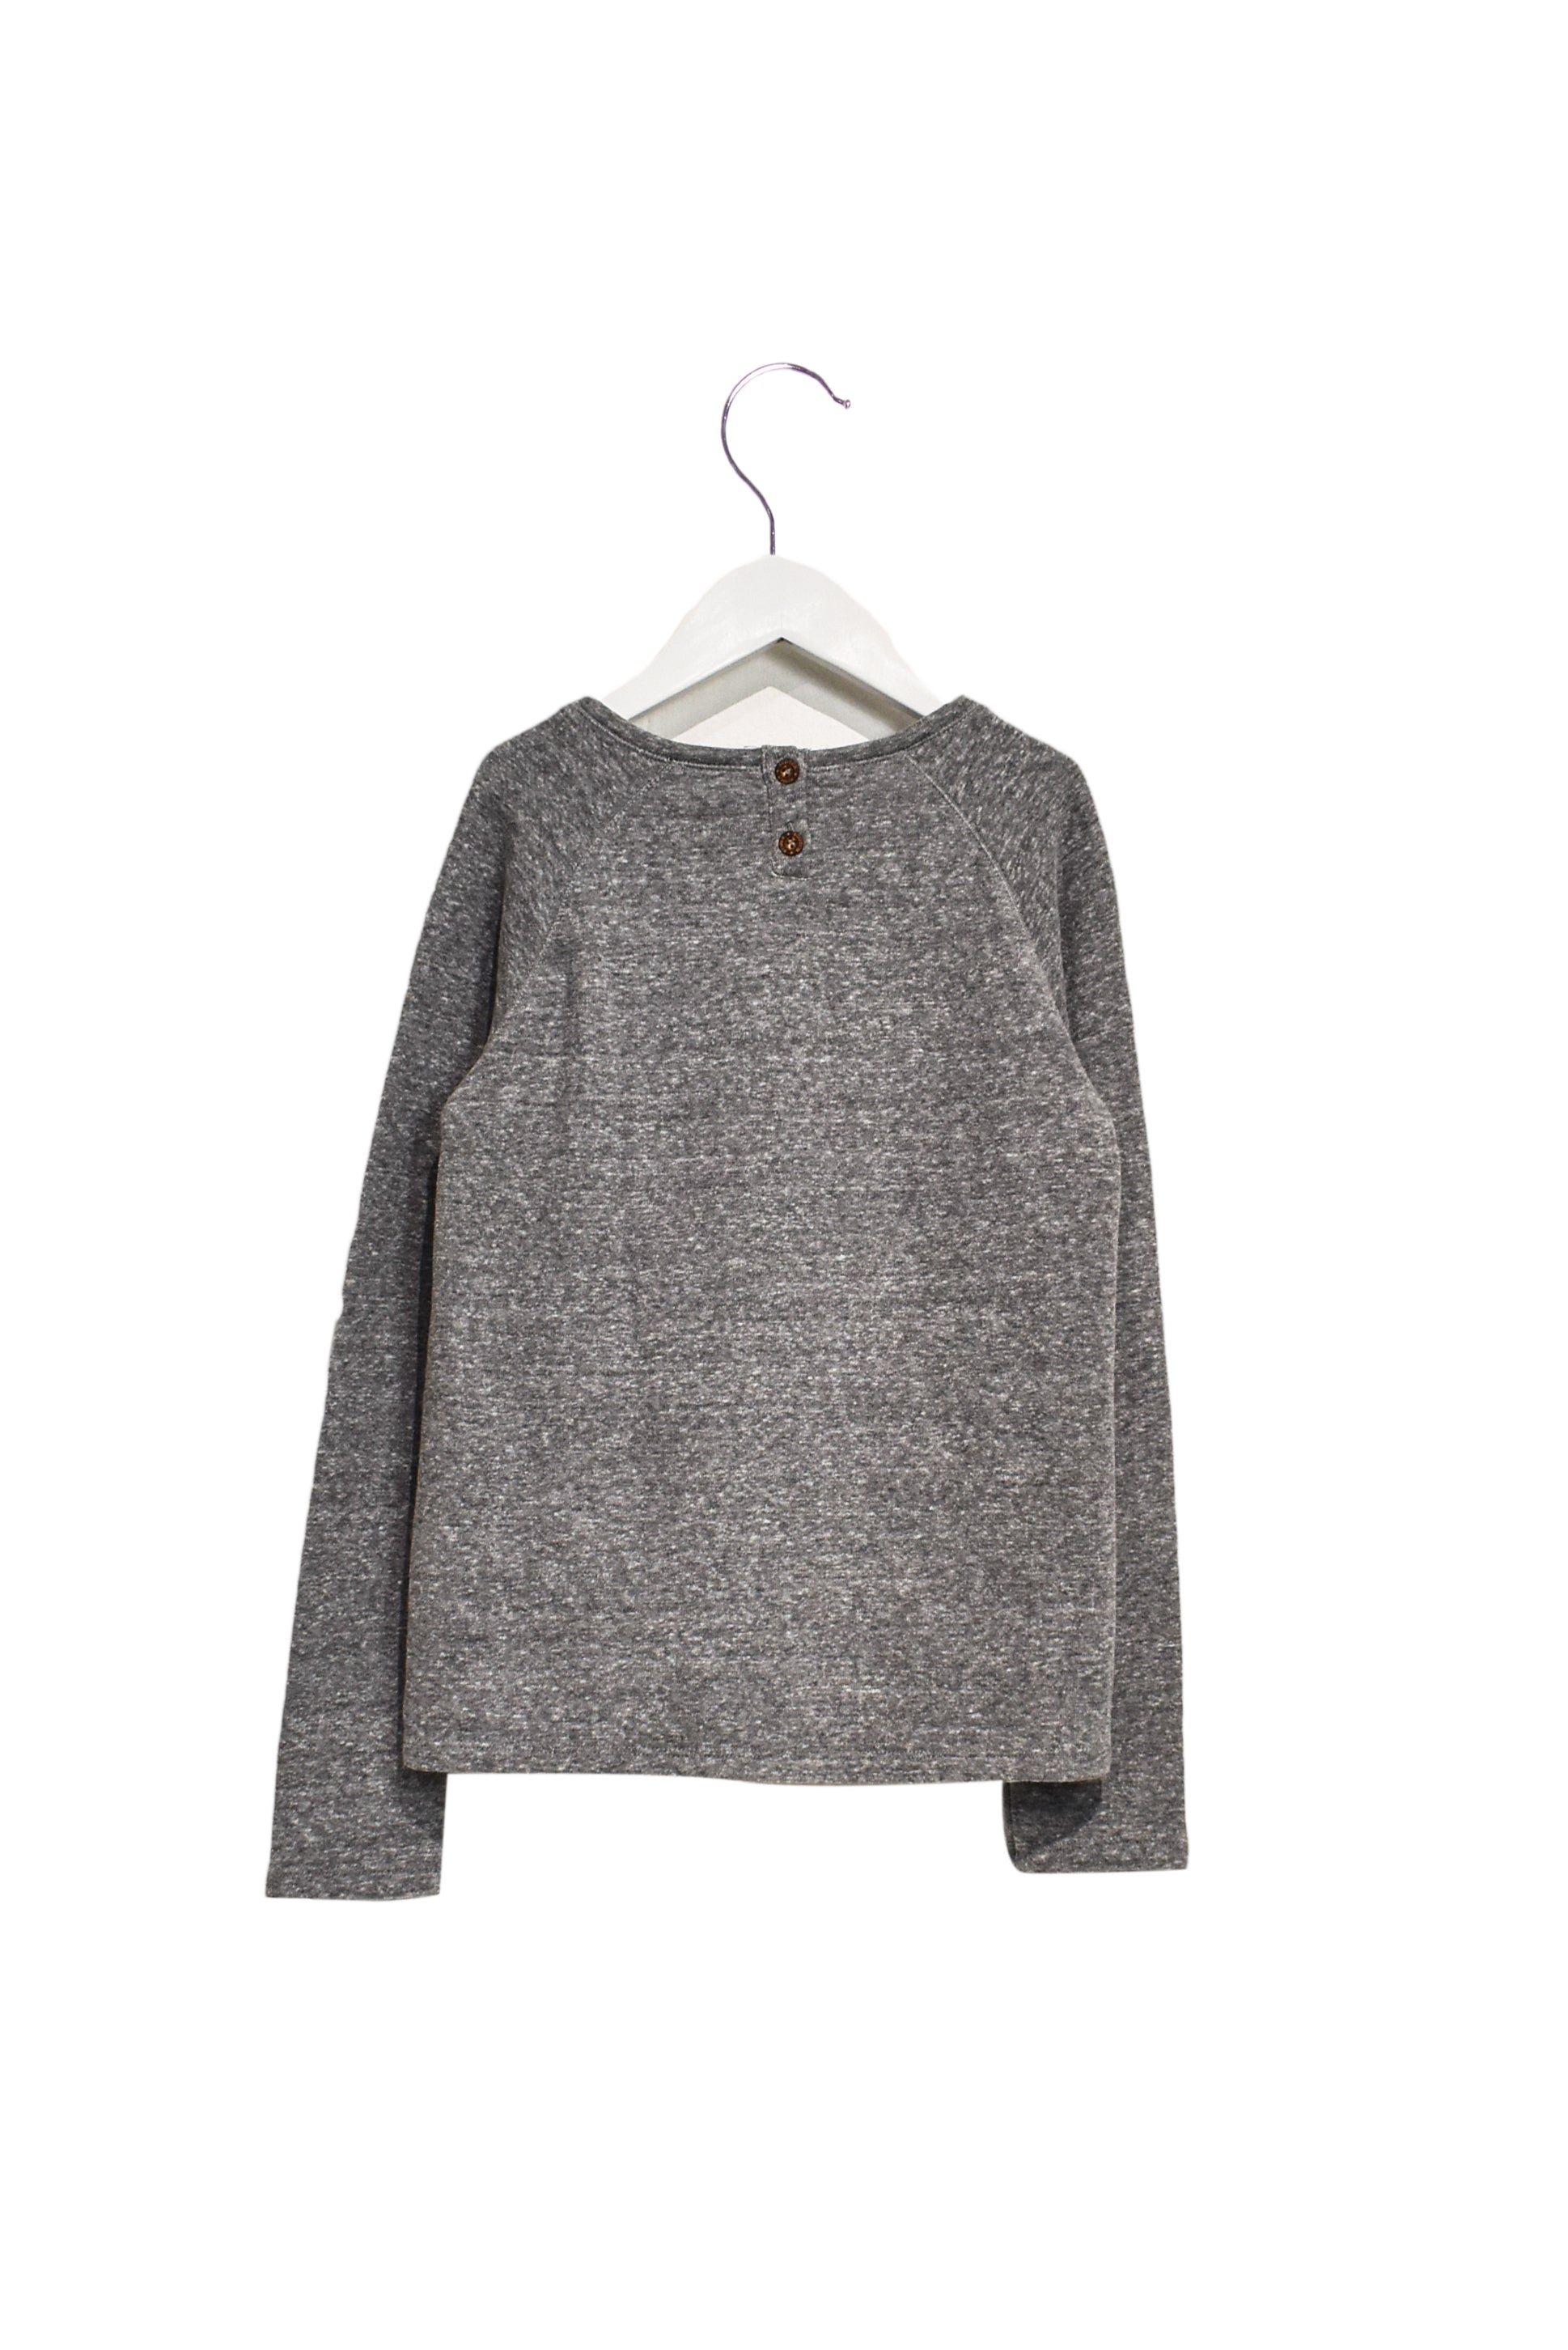 10021553 Scotch & Soda Kids~Sweatshirt 10 at Retykle